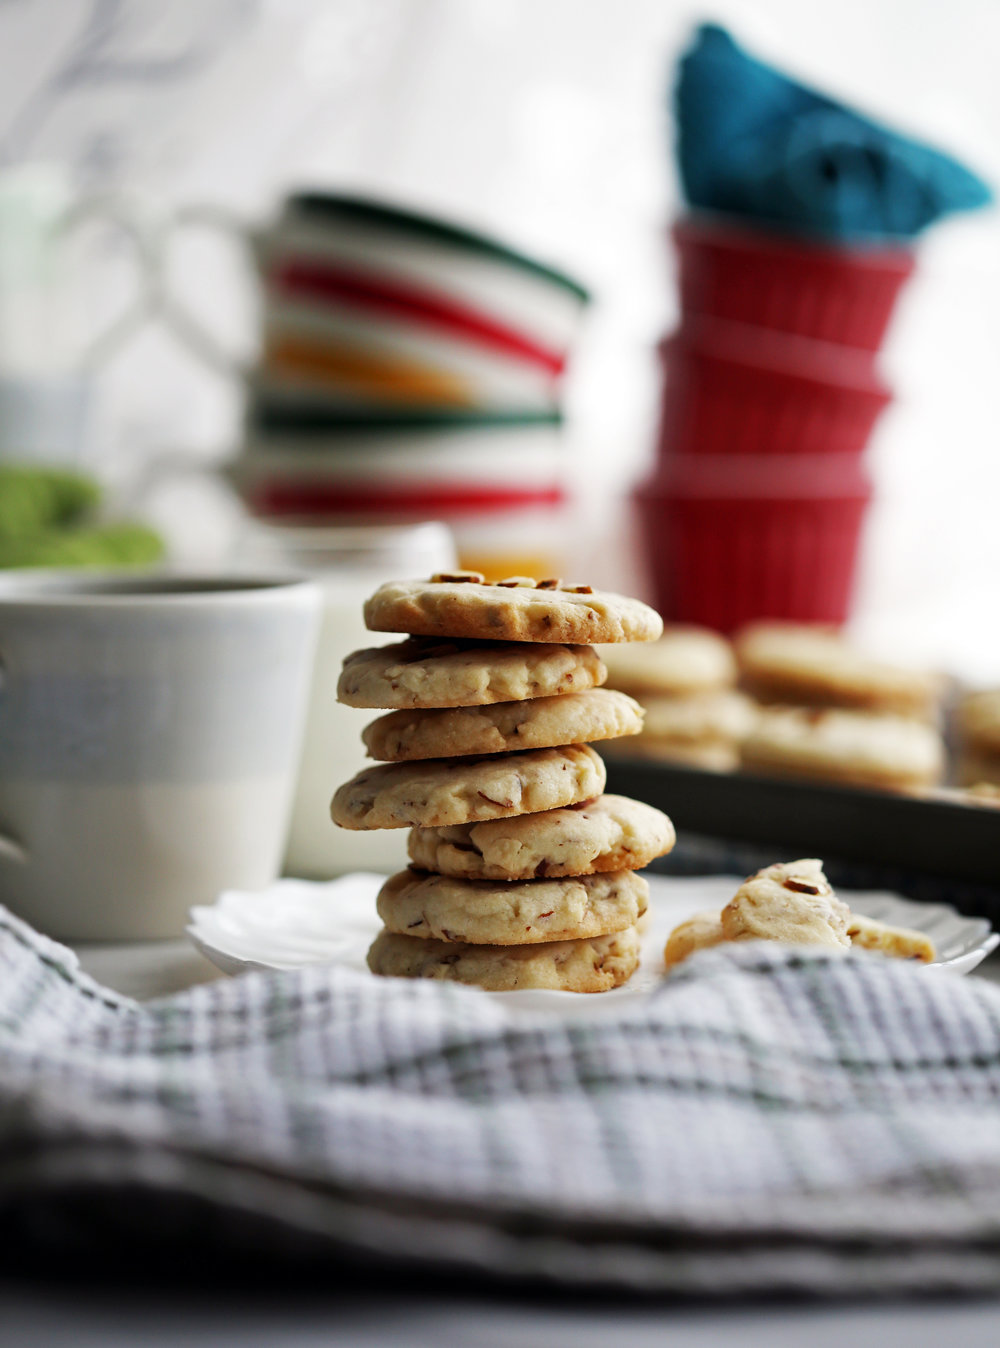 A stack of seven crunchy almond cookies on a white plate with cookies and coffee in the background.